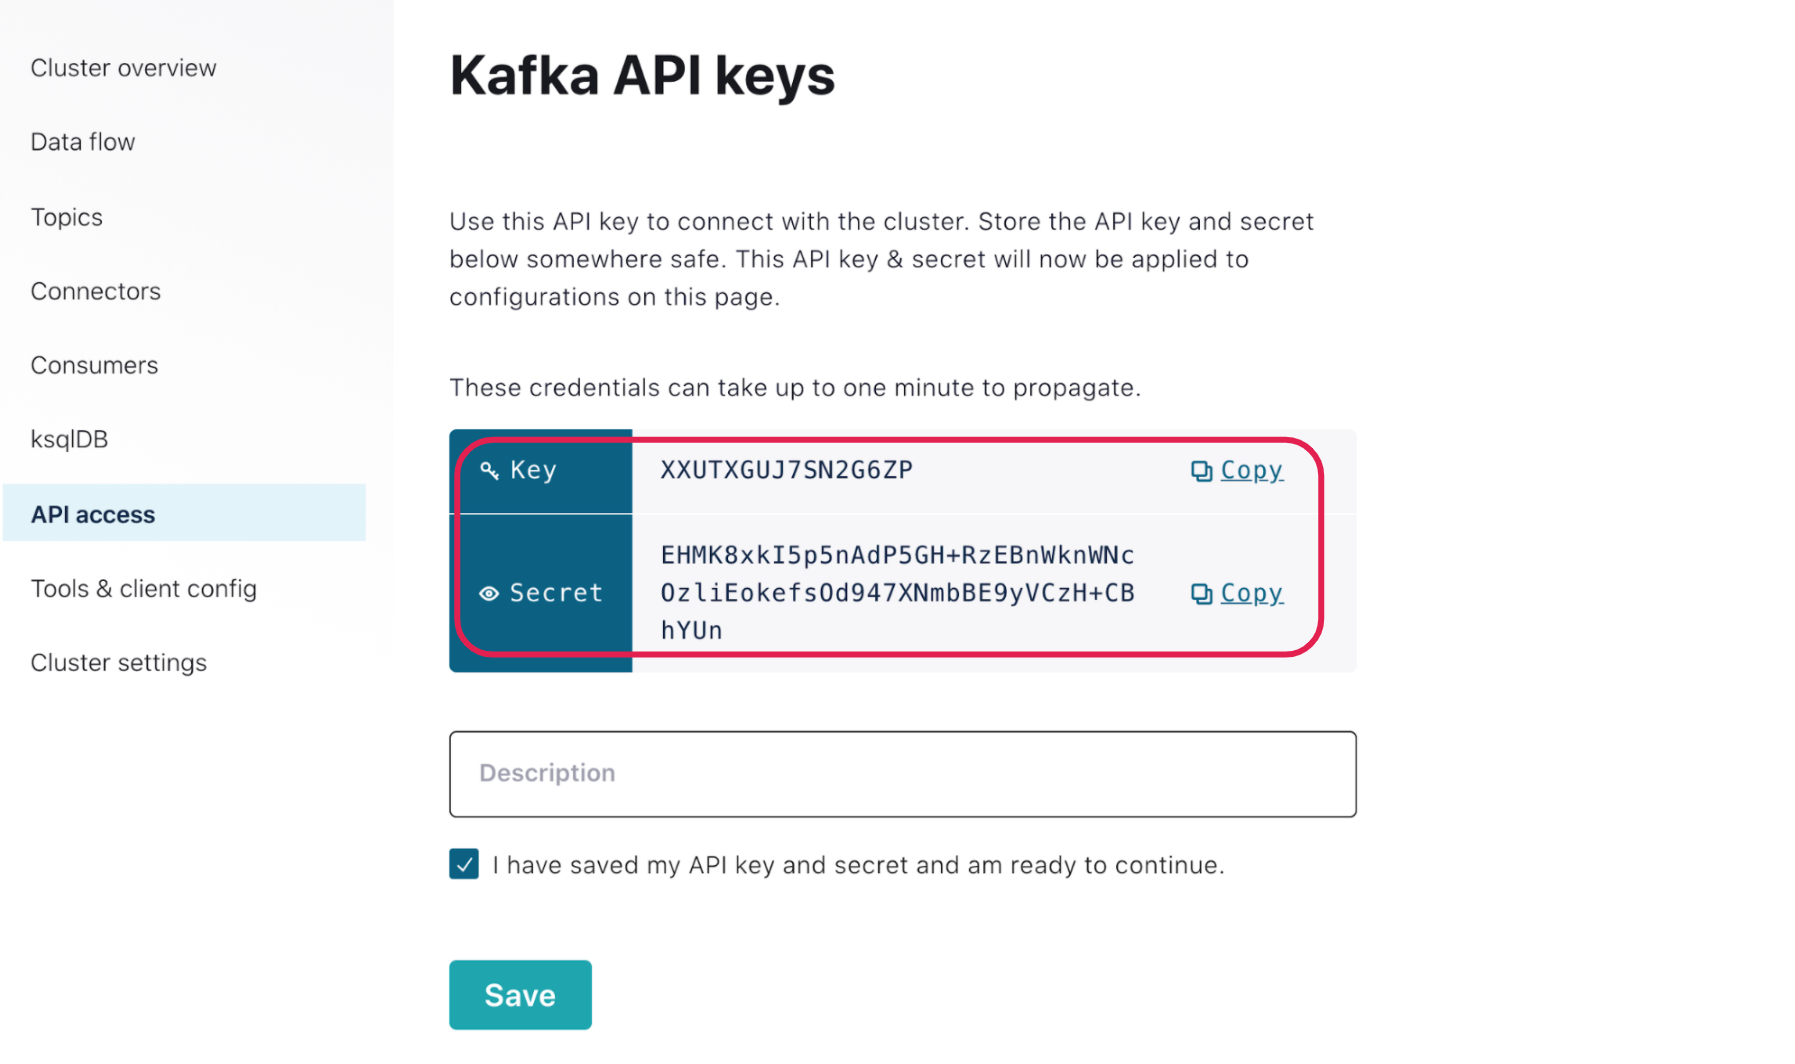 API access | Kafka API keys | Key | Secret